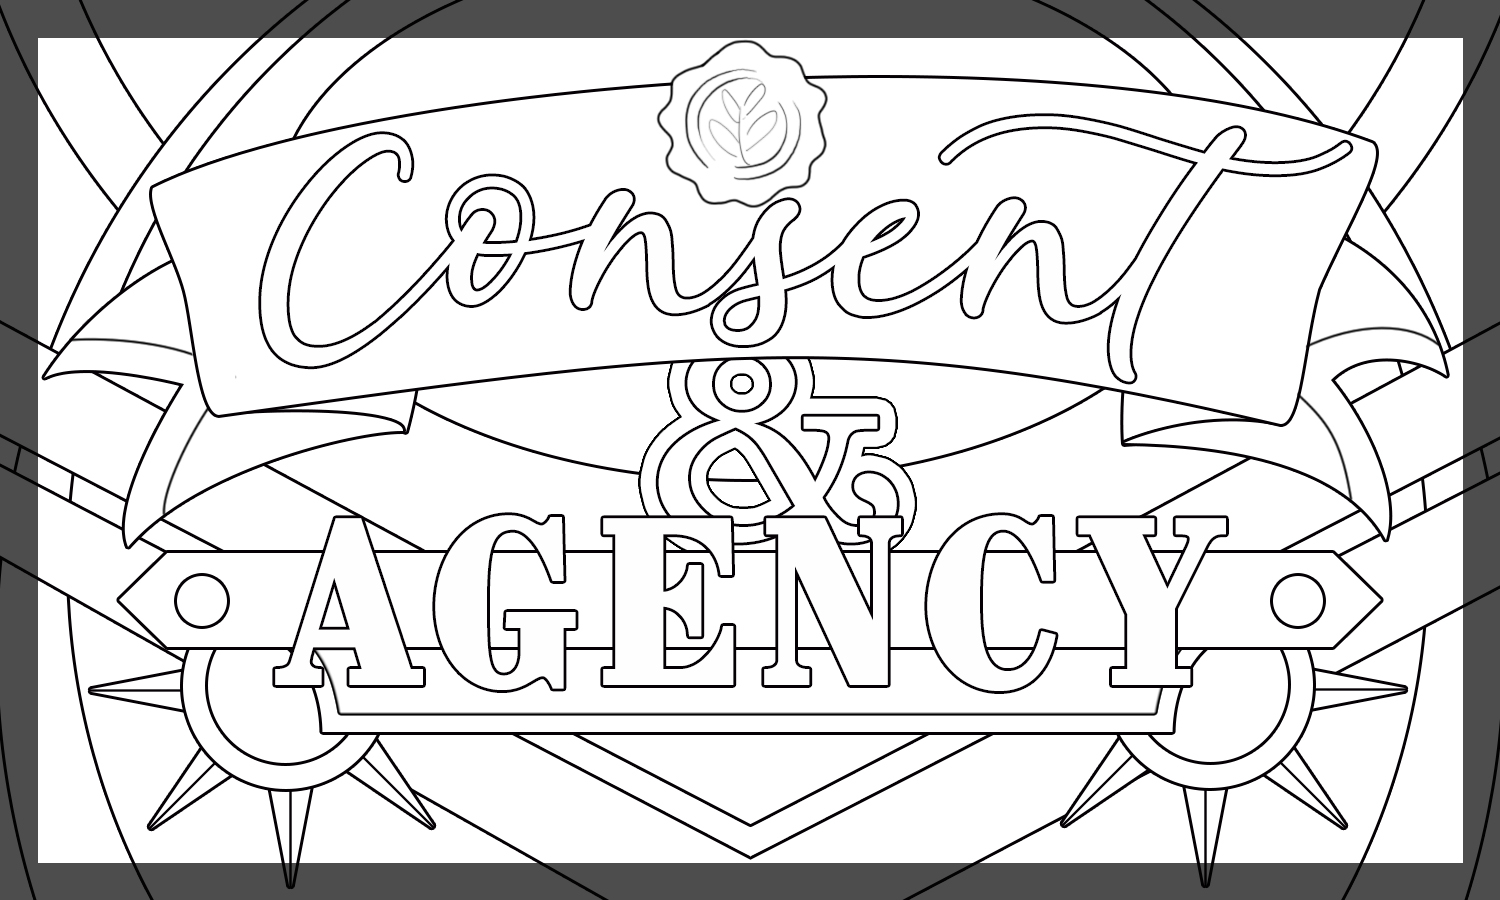 consent and agency